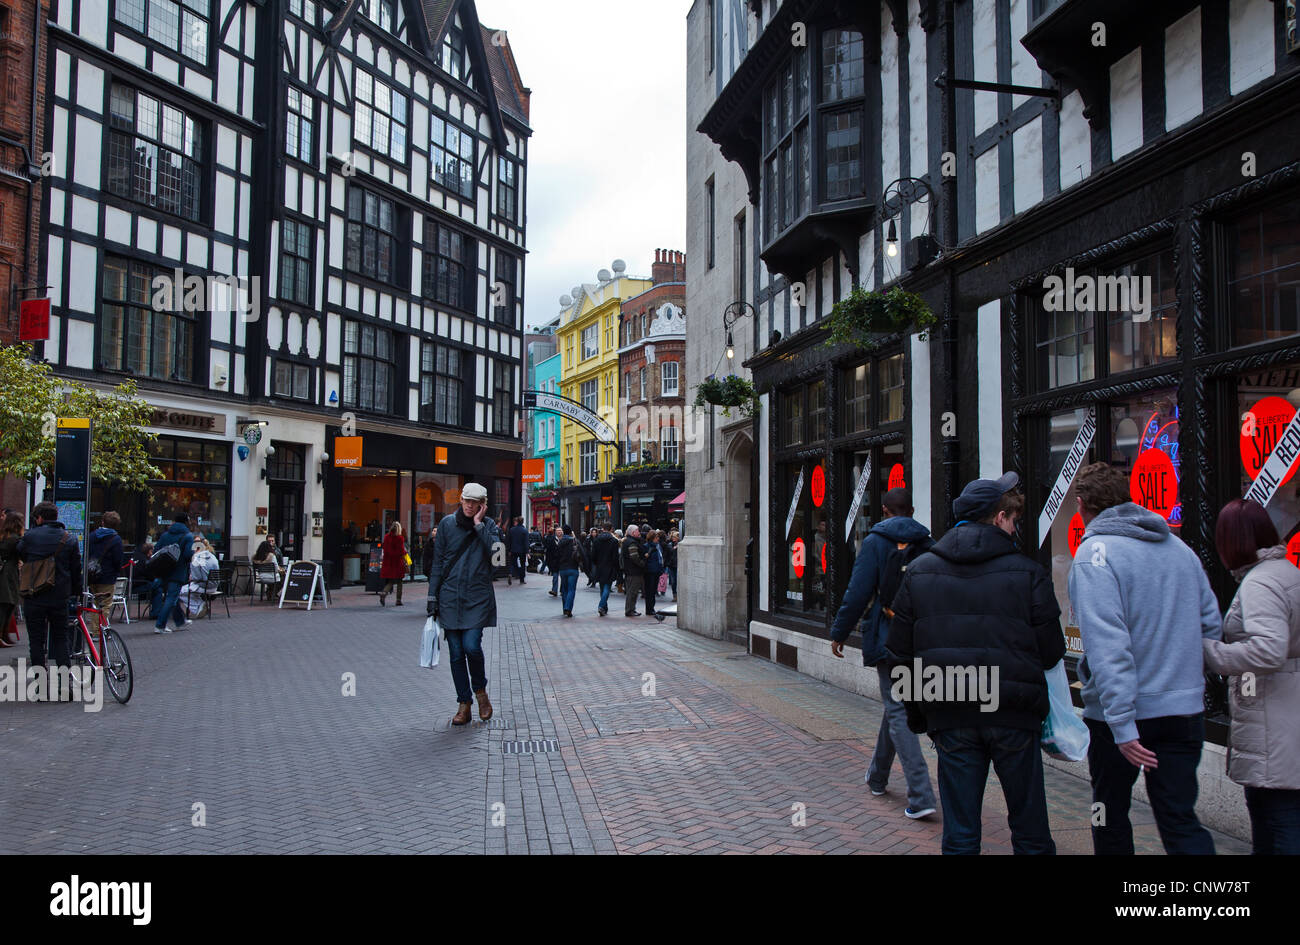 Europe England London, people in Carnaby street area - Stock Image